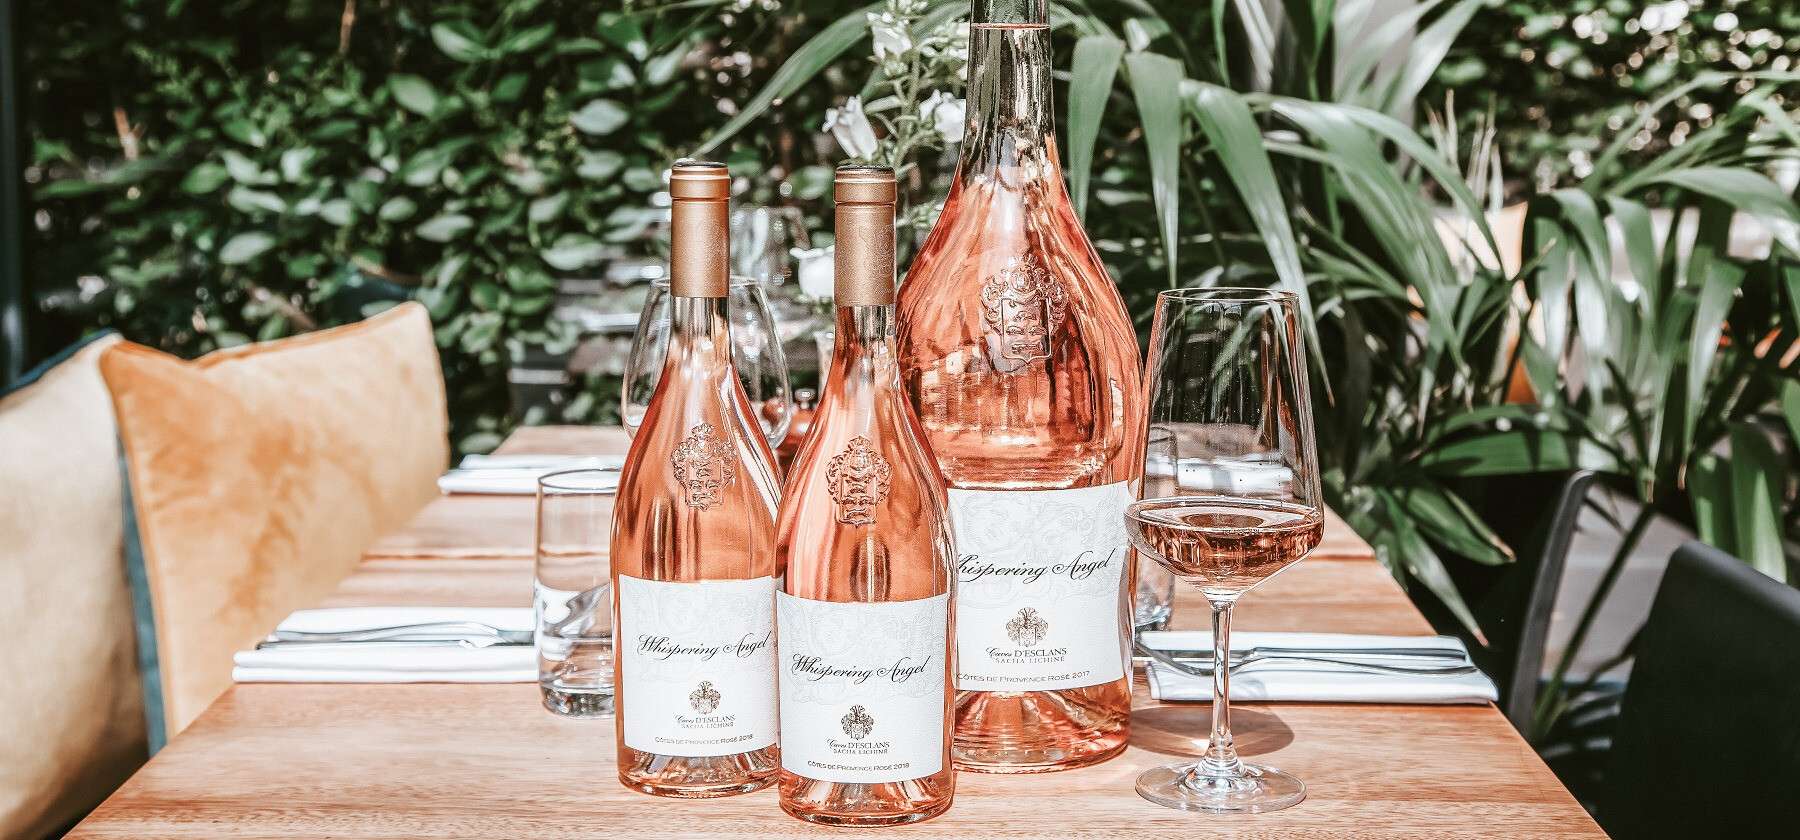 2019 Whispering Angel The world's most famous rosé at a knockout en primeur price